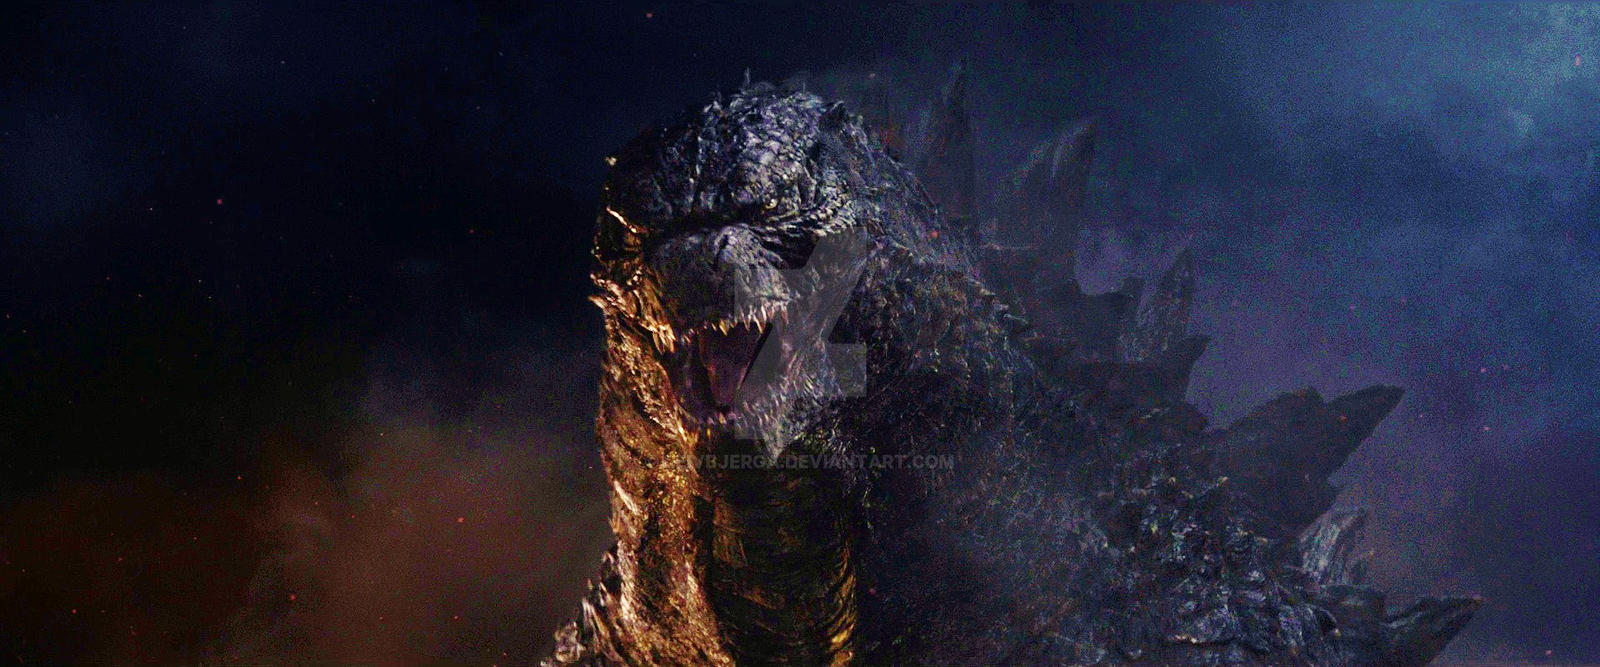 Godzilla 2014/2020 by leivbjerga on DeviantArt